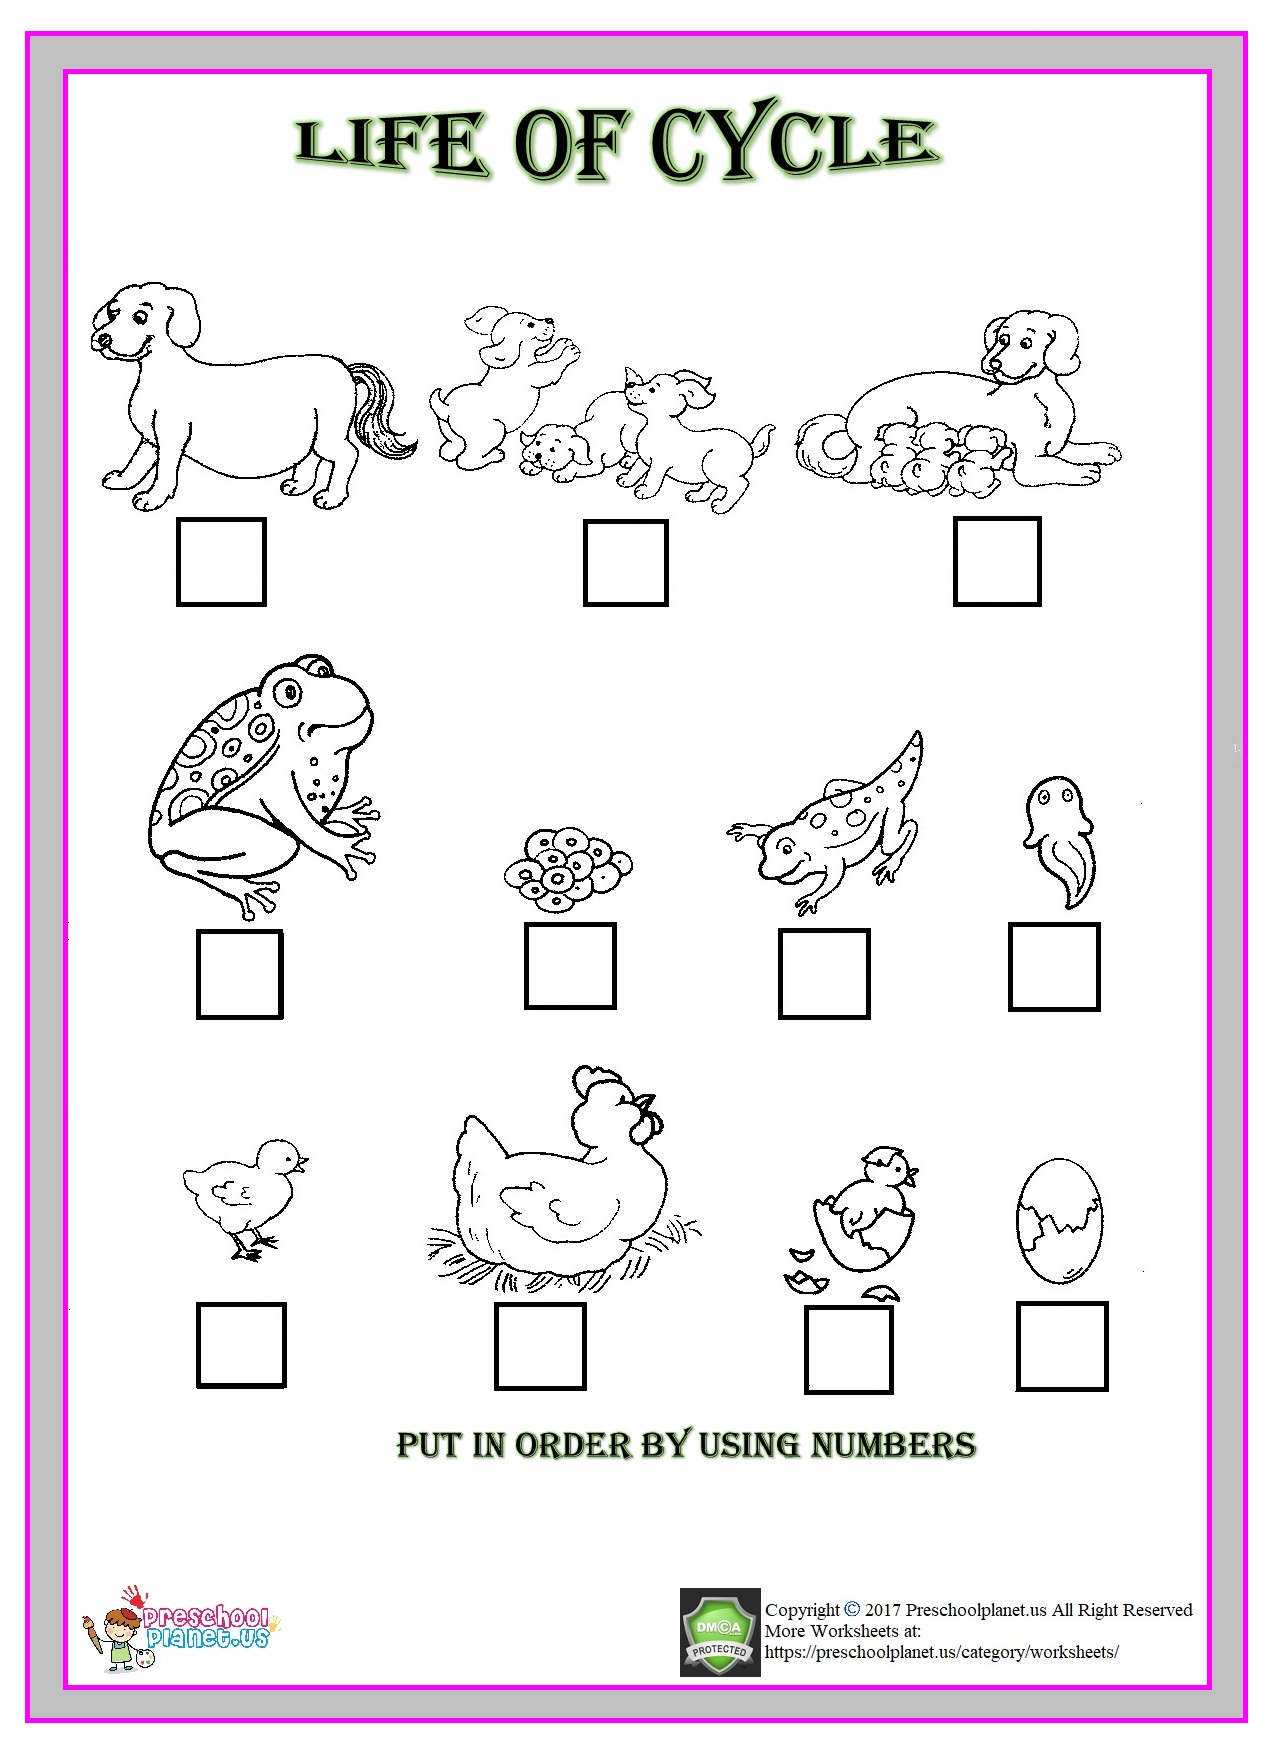 Life Of Cycle Animals Worksheet For Kindergarten